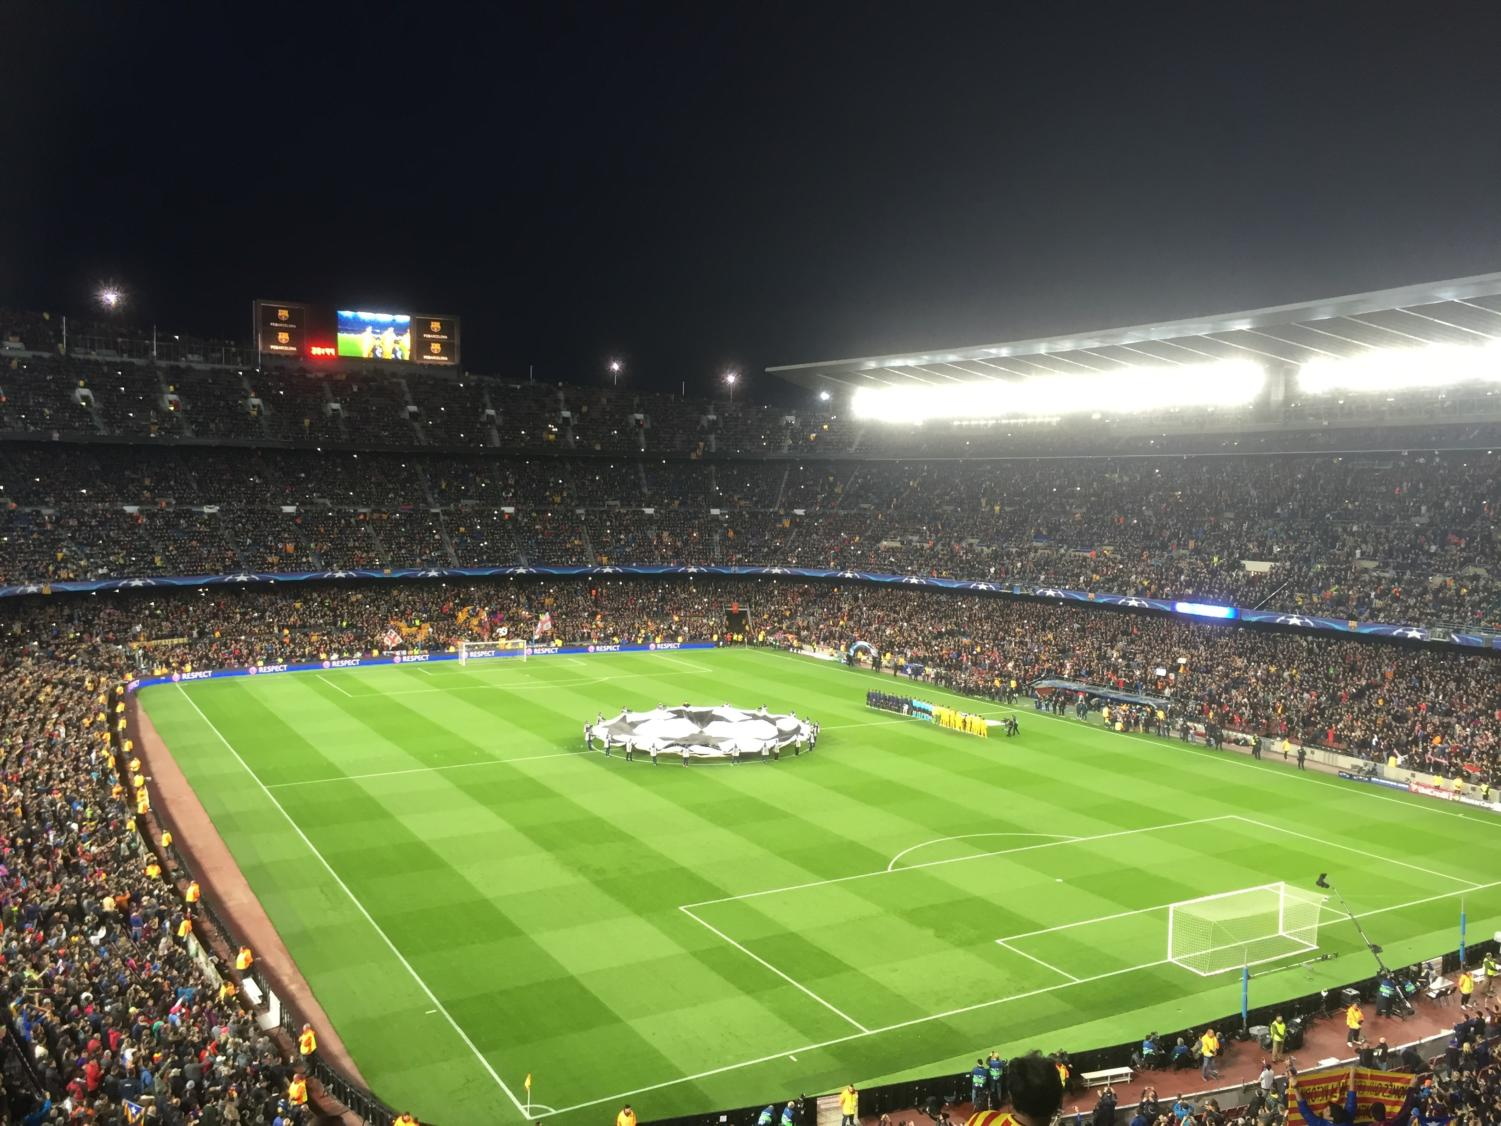 The UEFA Champions League is played September through June and involves Europe's top teams.